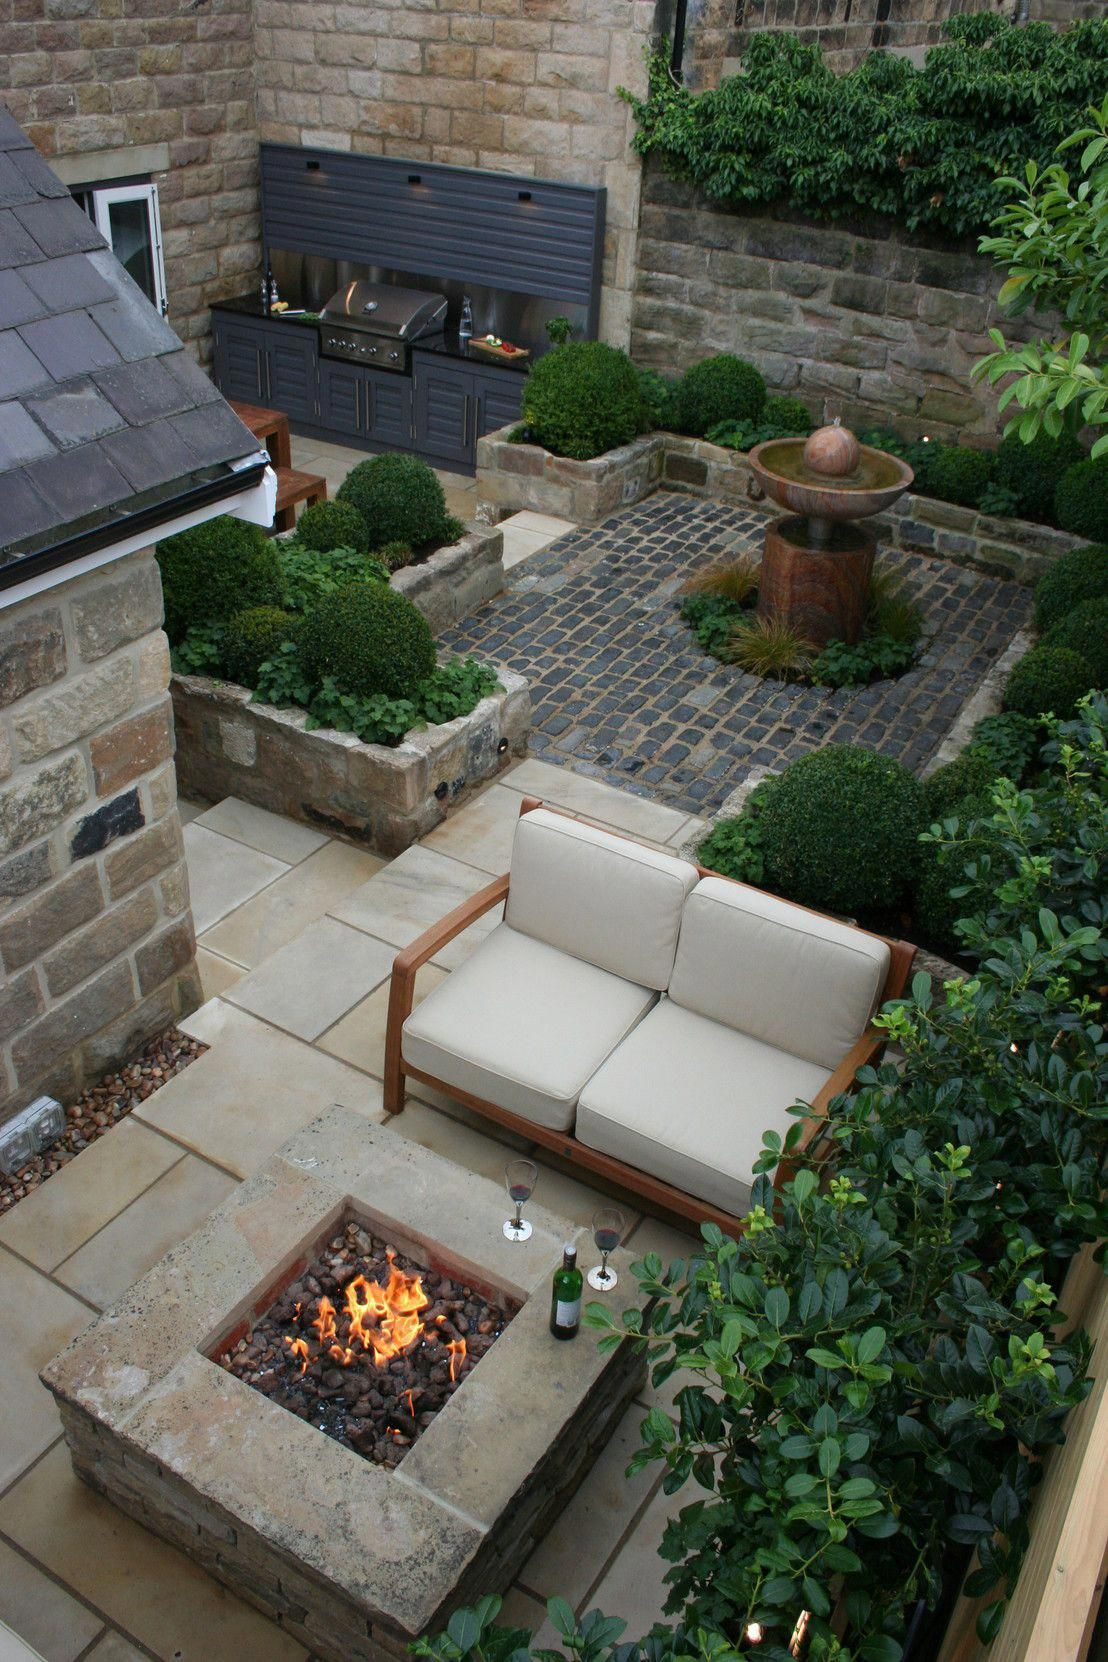 Urban Courtyard for Entertaining by Bestall & Co Landscape ... on Small Urban Patio Ideas id=18465